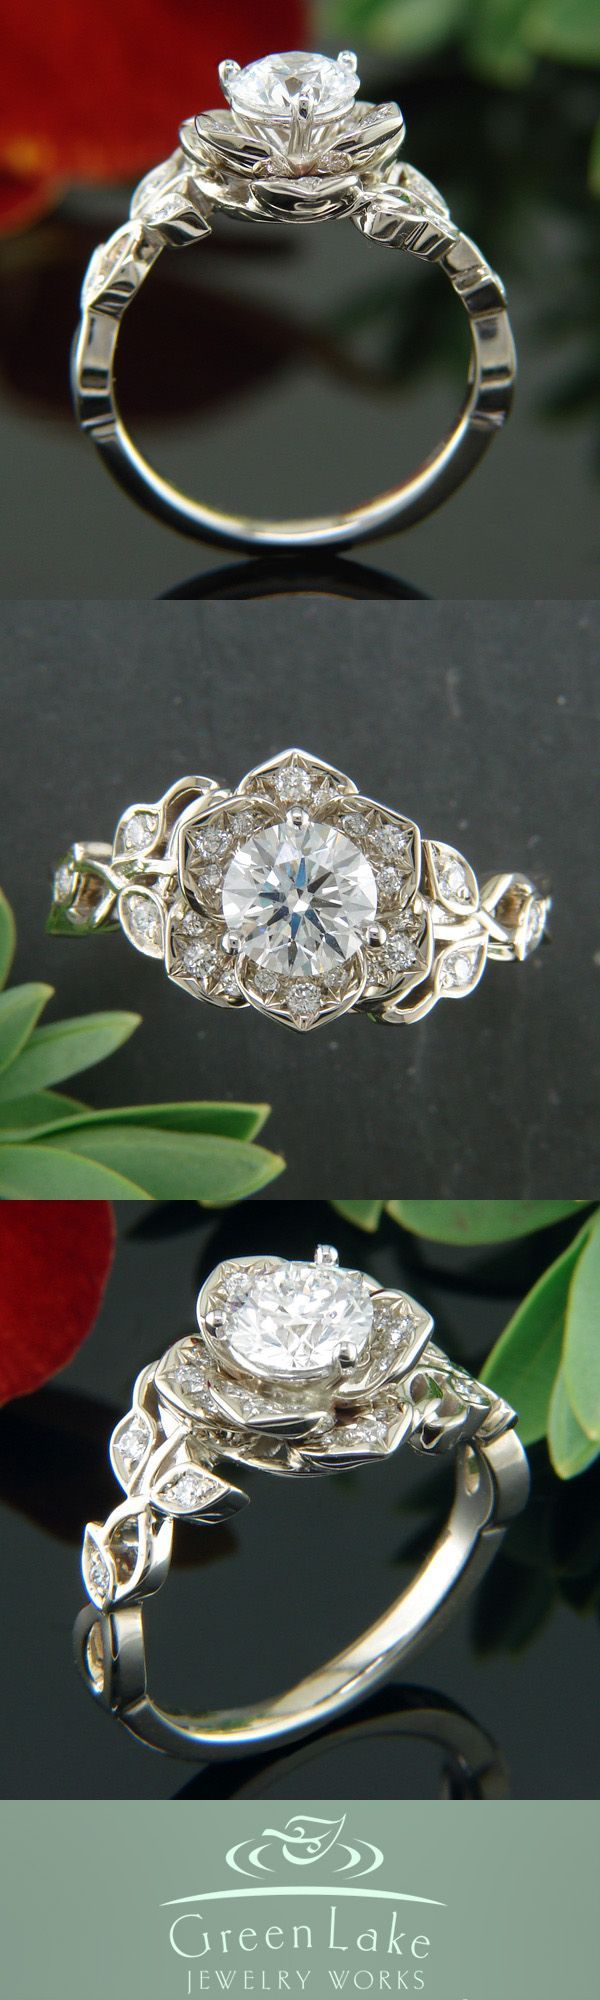 Lotus and vine inspired warm white gold engagement ring. Lotus and forgetmenot flowers everything!